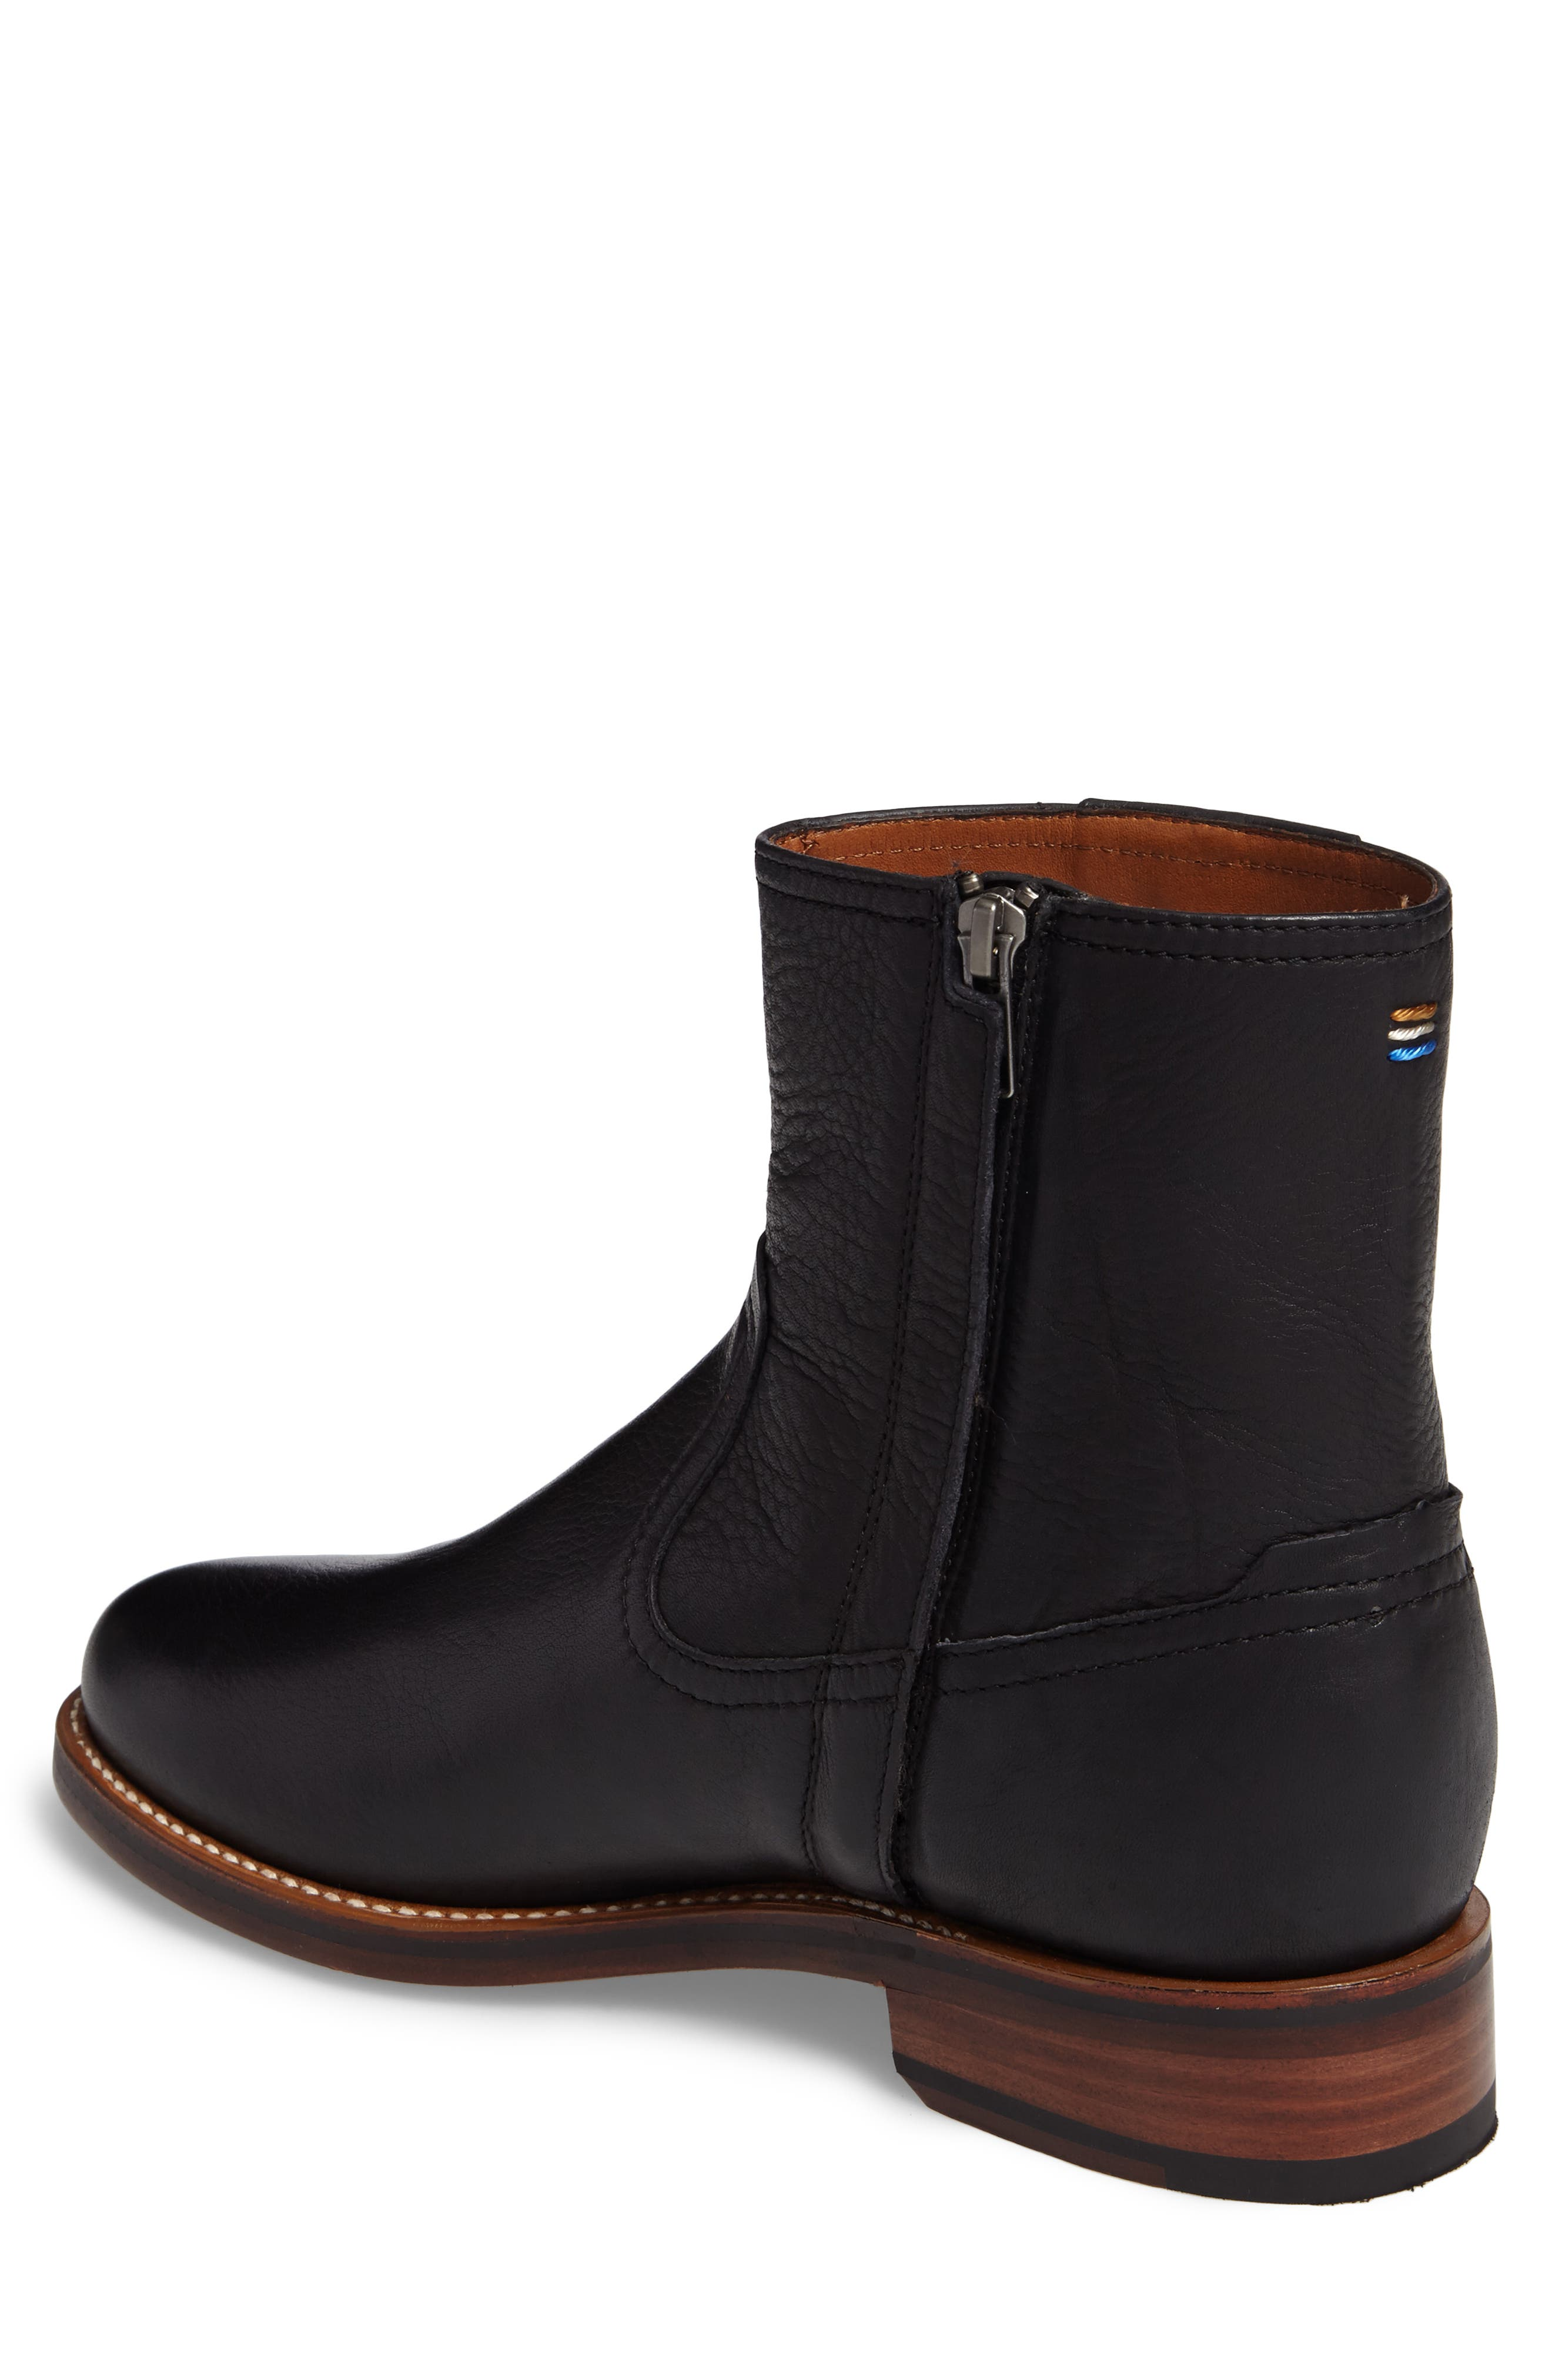 Alternate Image 2  - Ariat Santa Fe Mid Zip Boot (Men)